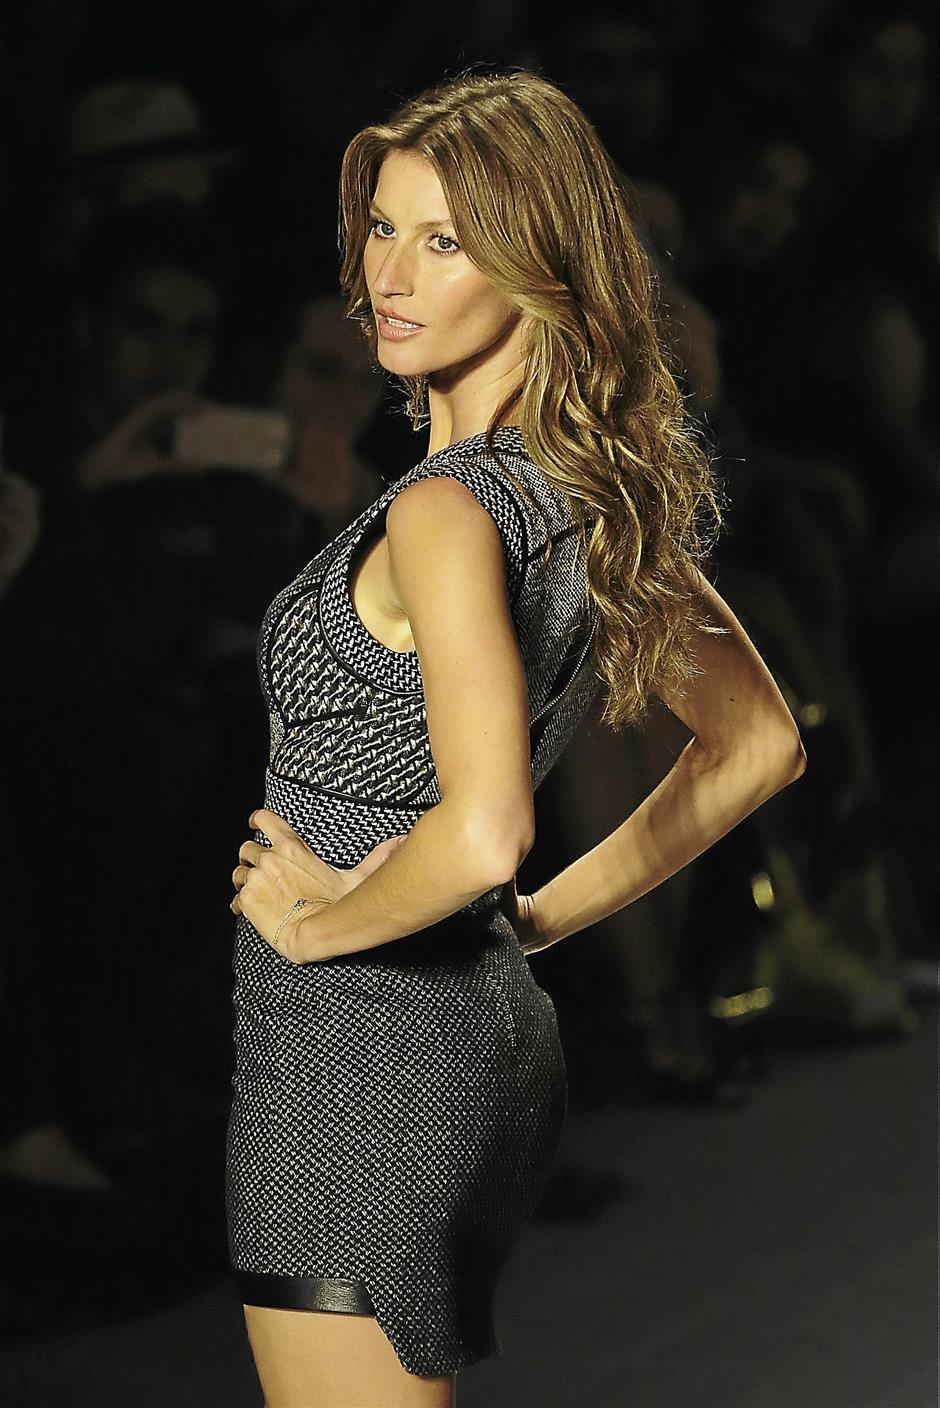 Brazilian top model Gisele Bundchen has been amping up her personal brand worth an estimated RM131mil.